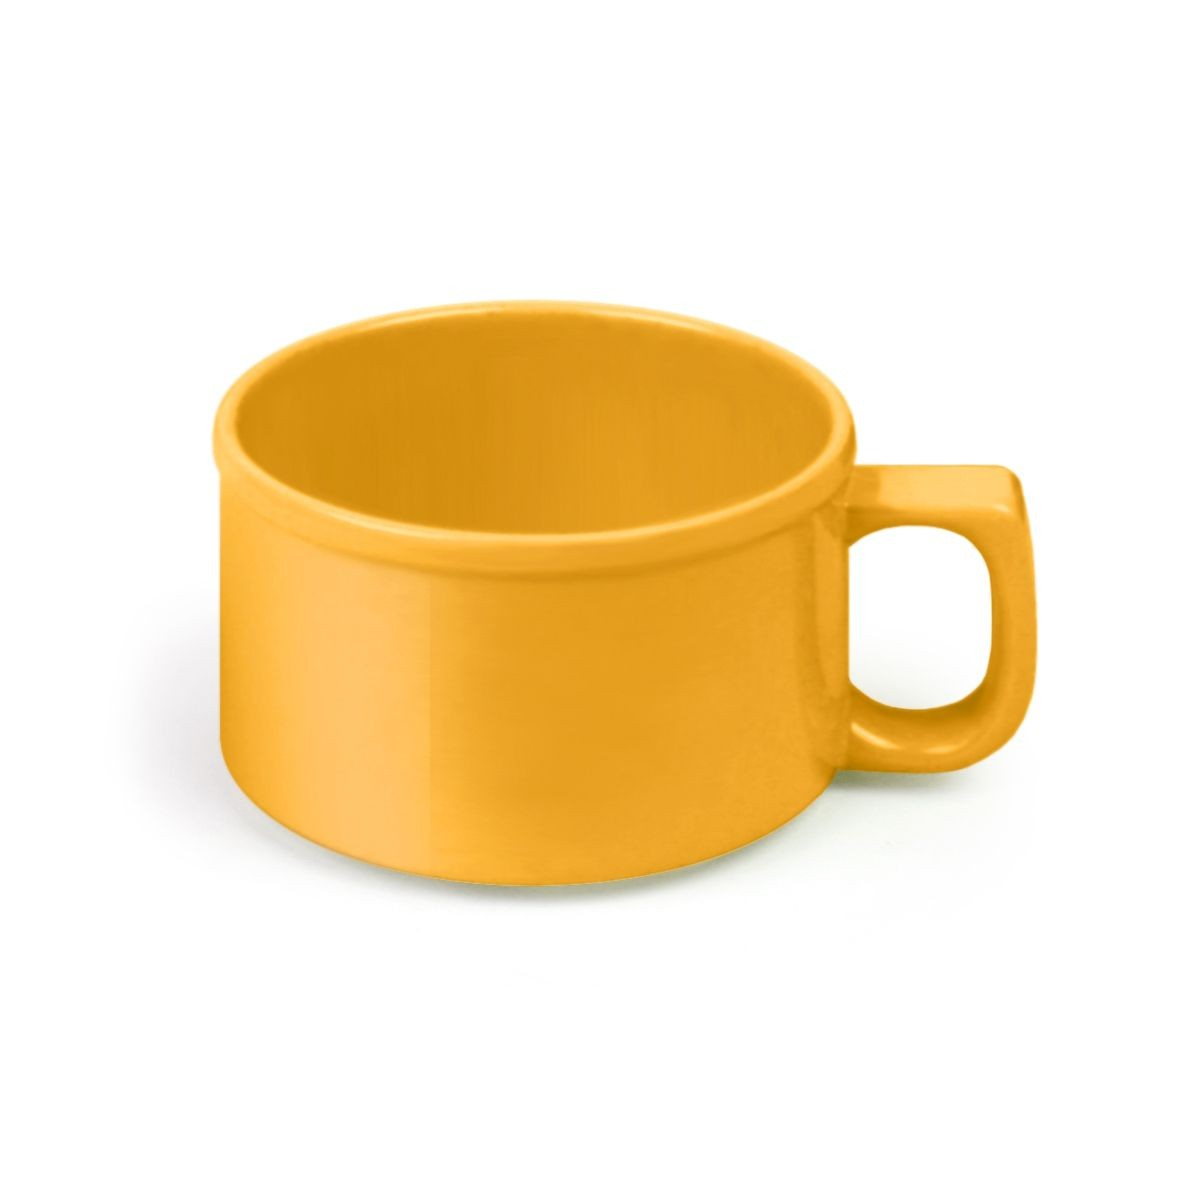 Thunder Group CR9016YW 8 oz Soup Mug, Melamine Yellow - 1 doz